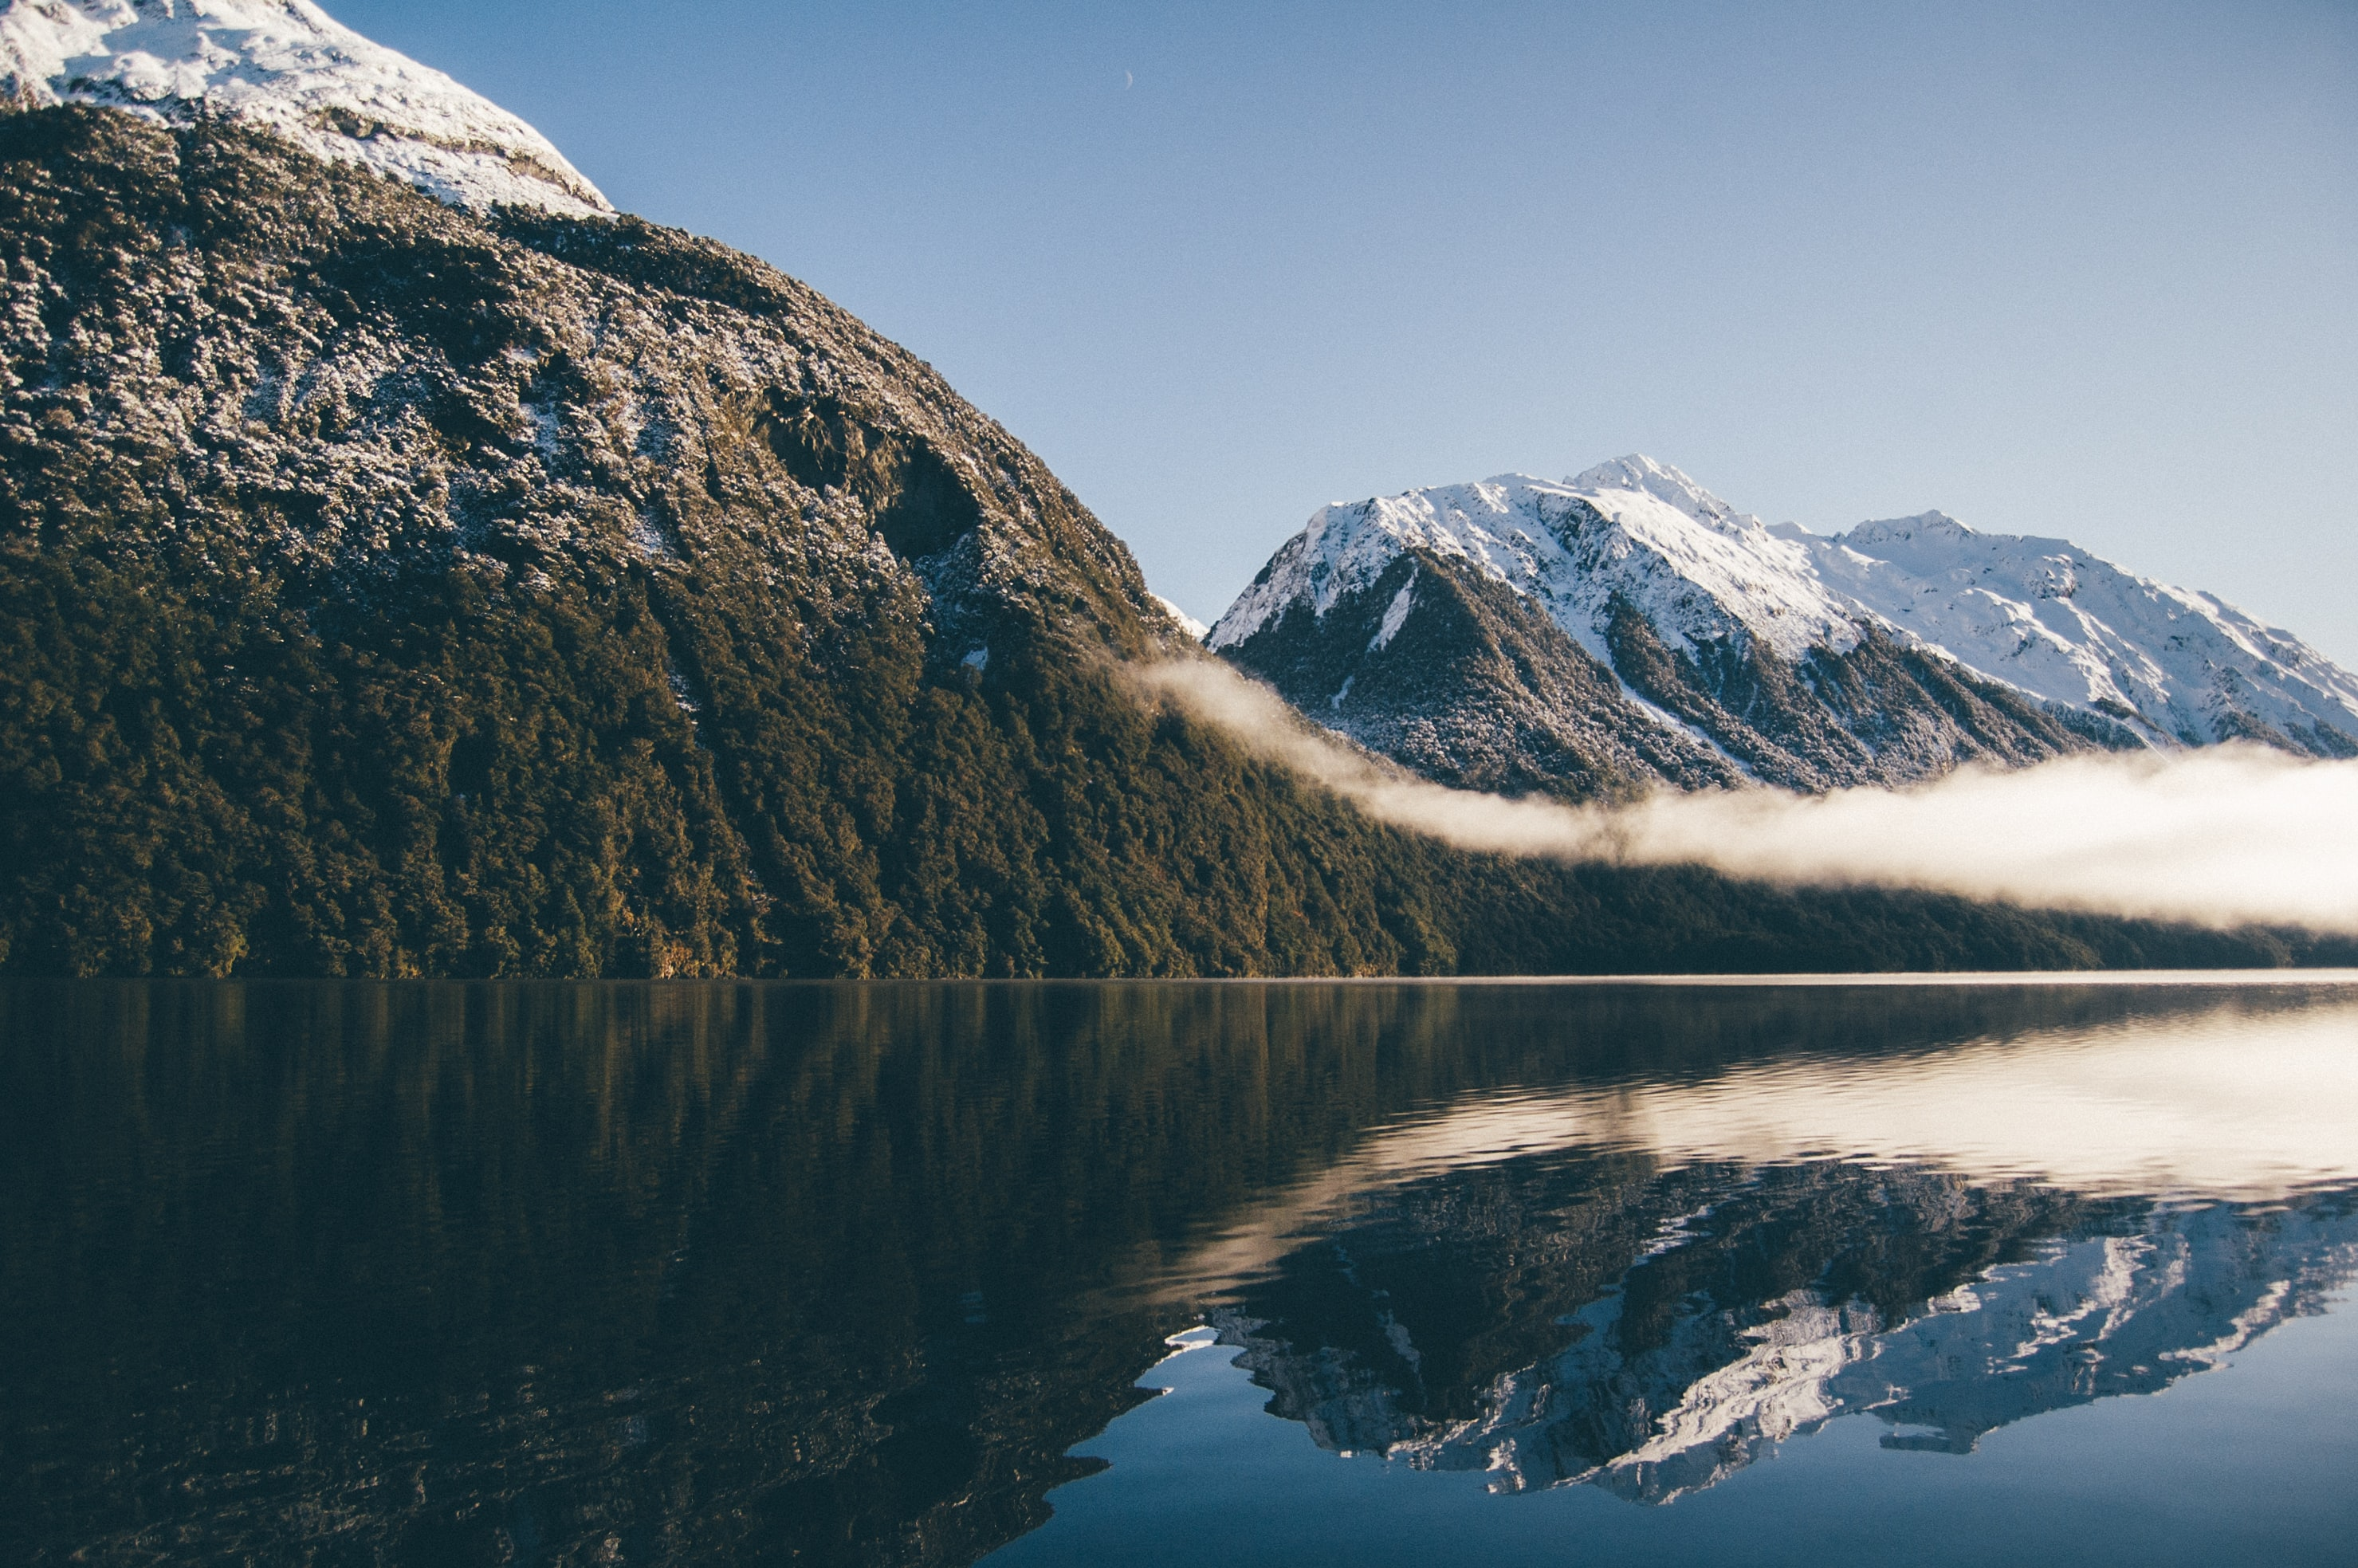 Majestic mountains reflect into a serene lake in winter